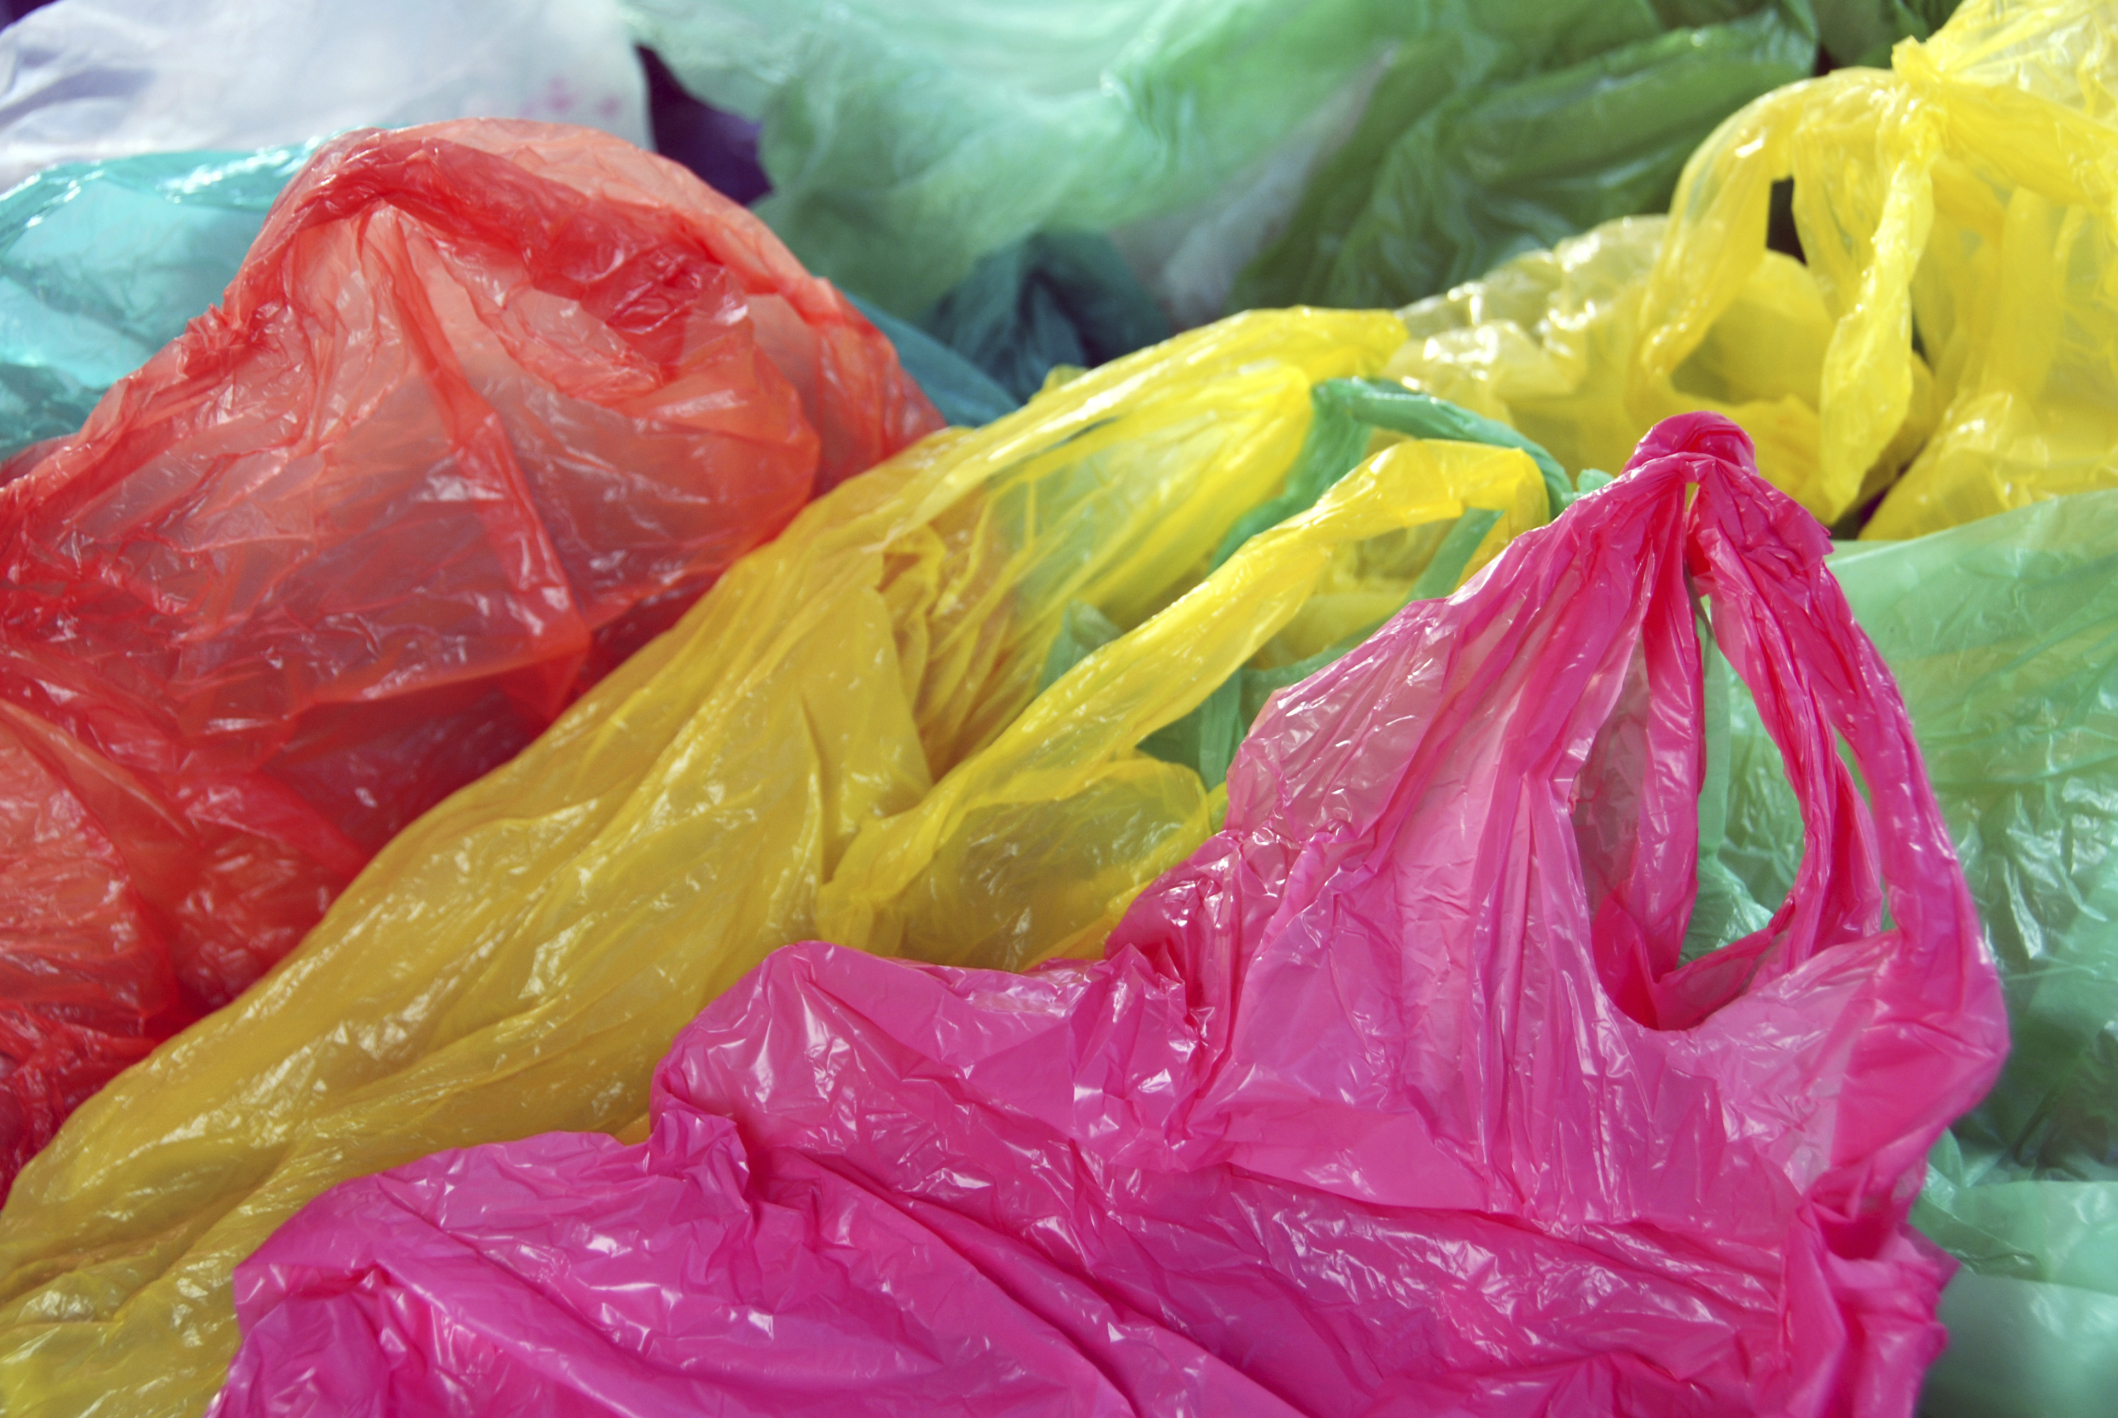 Coloured plastic carrier bags. Image credit: Thinkstock